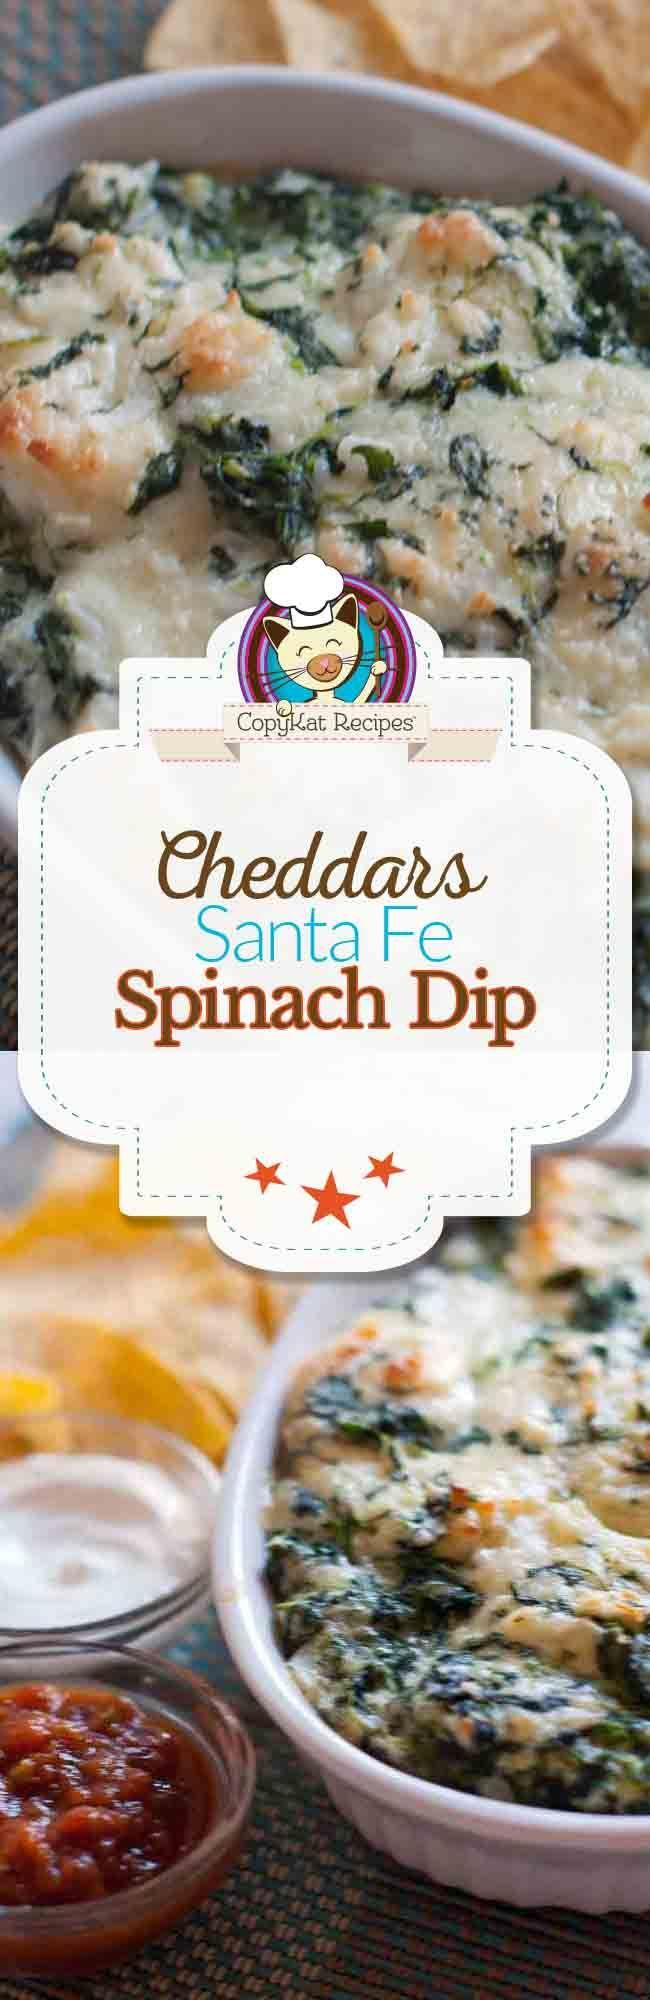 ... Cheddars Santa Fe Spinach Dip at home with this easy copycat recipe